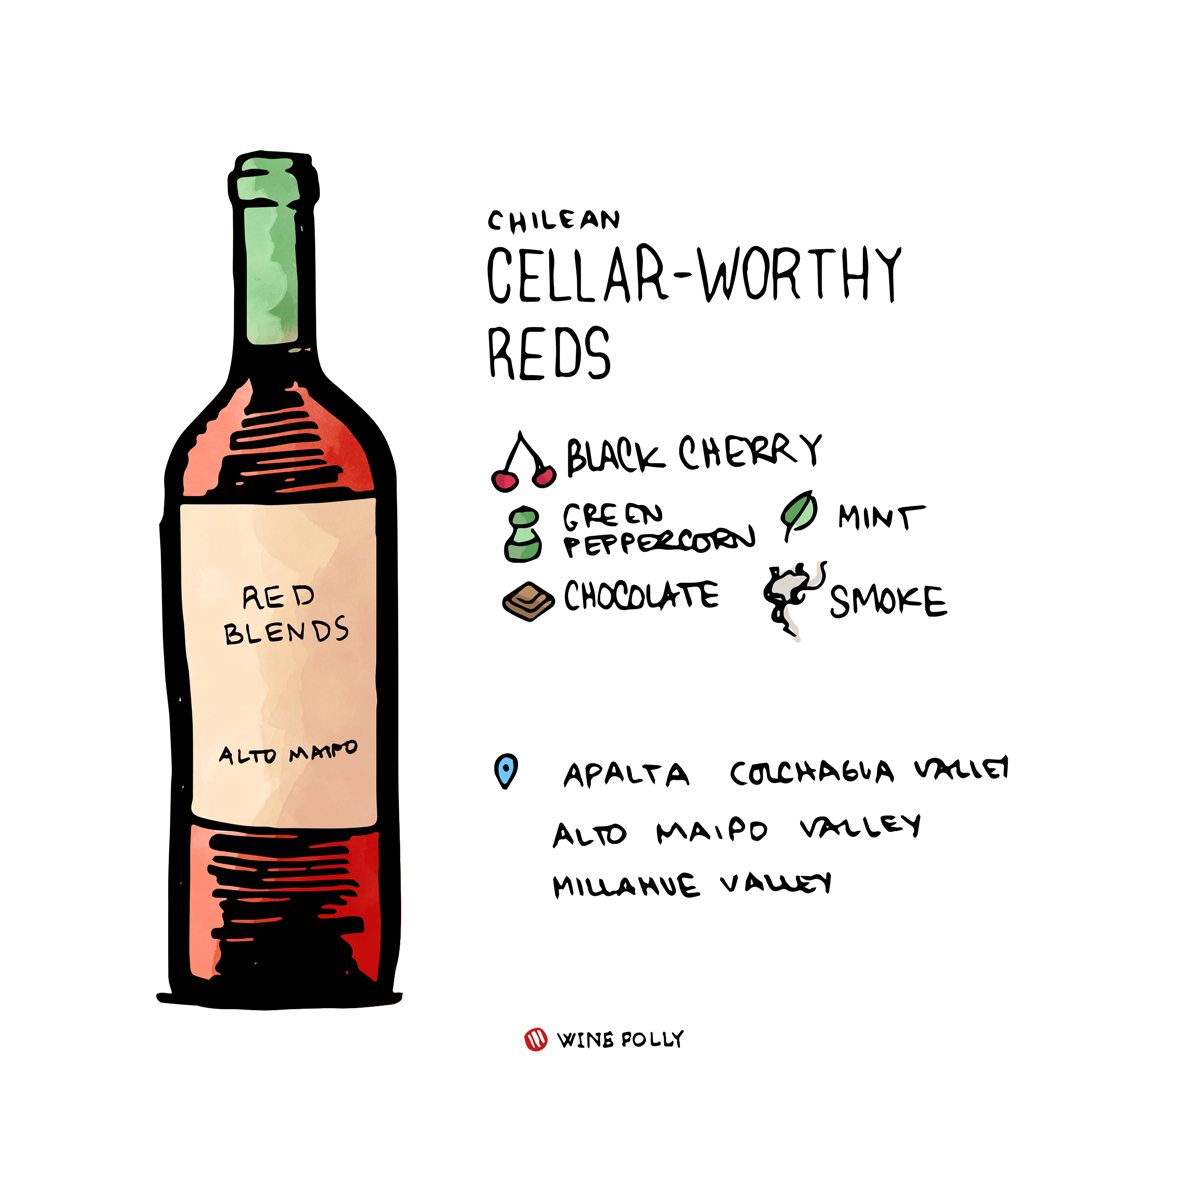 Collectible Chilean red wines that will age well - illustration by Wine Folly